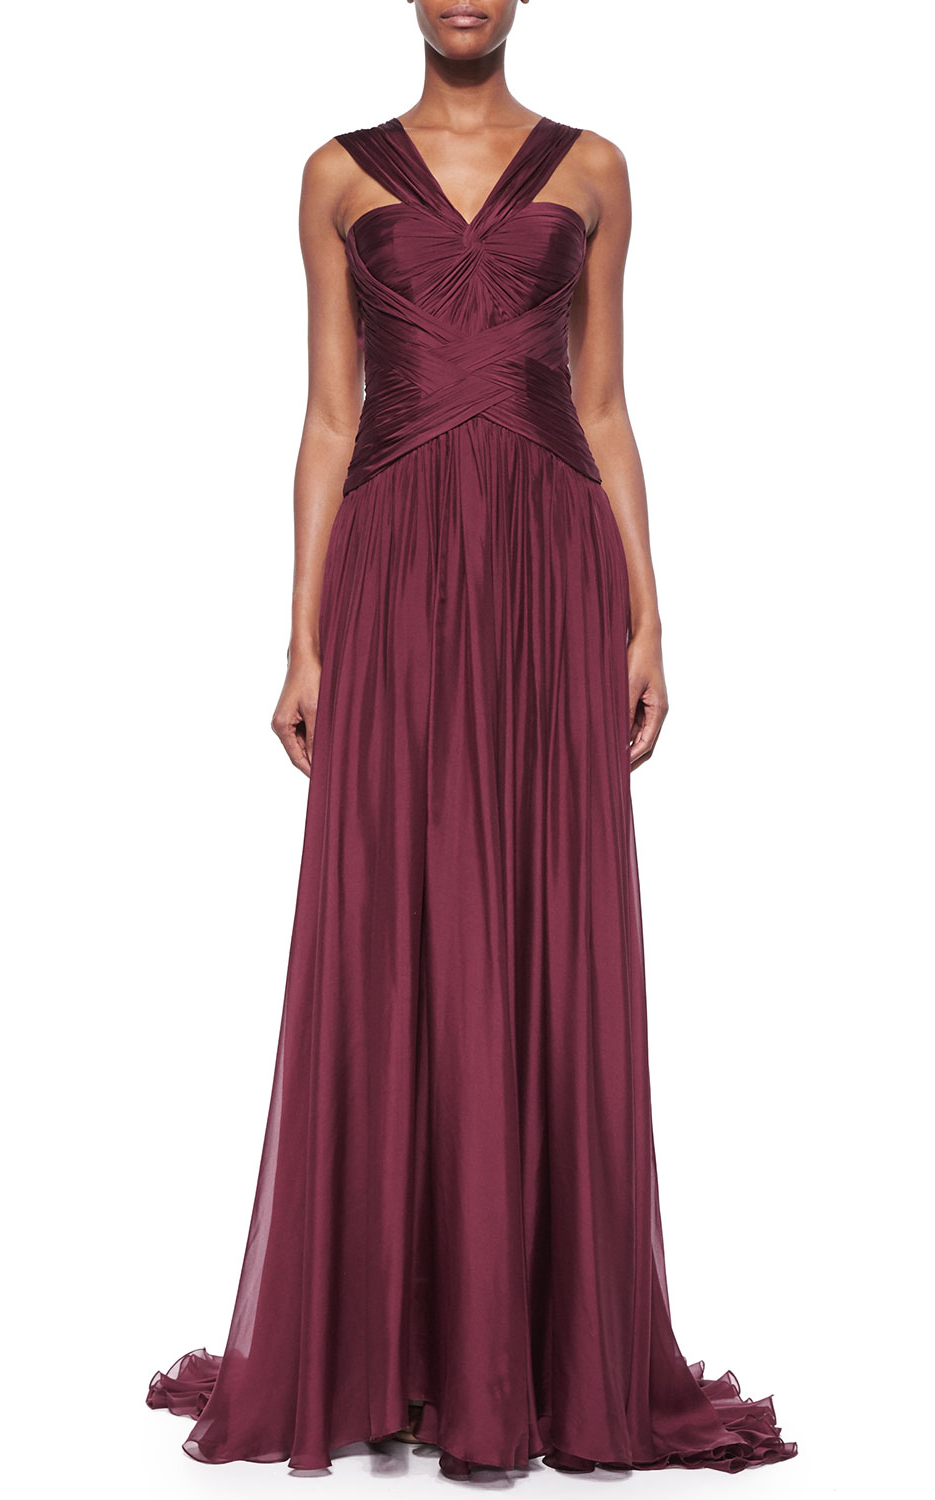 Monique Lhuillier Draped Crisscross Halter Gown